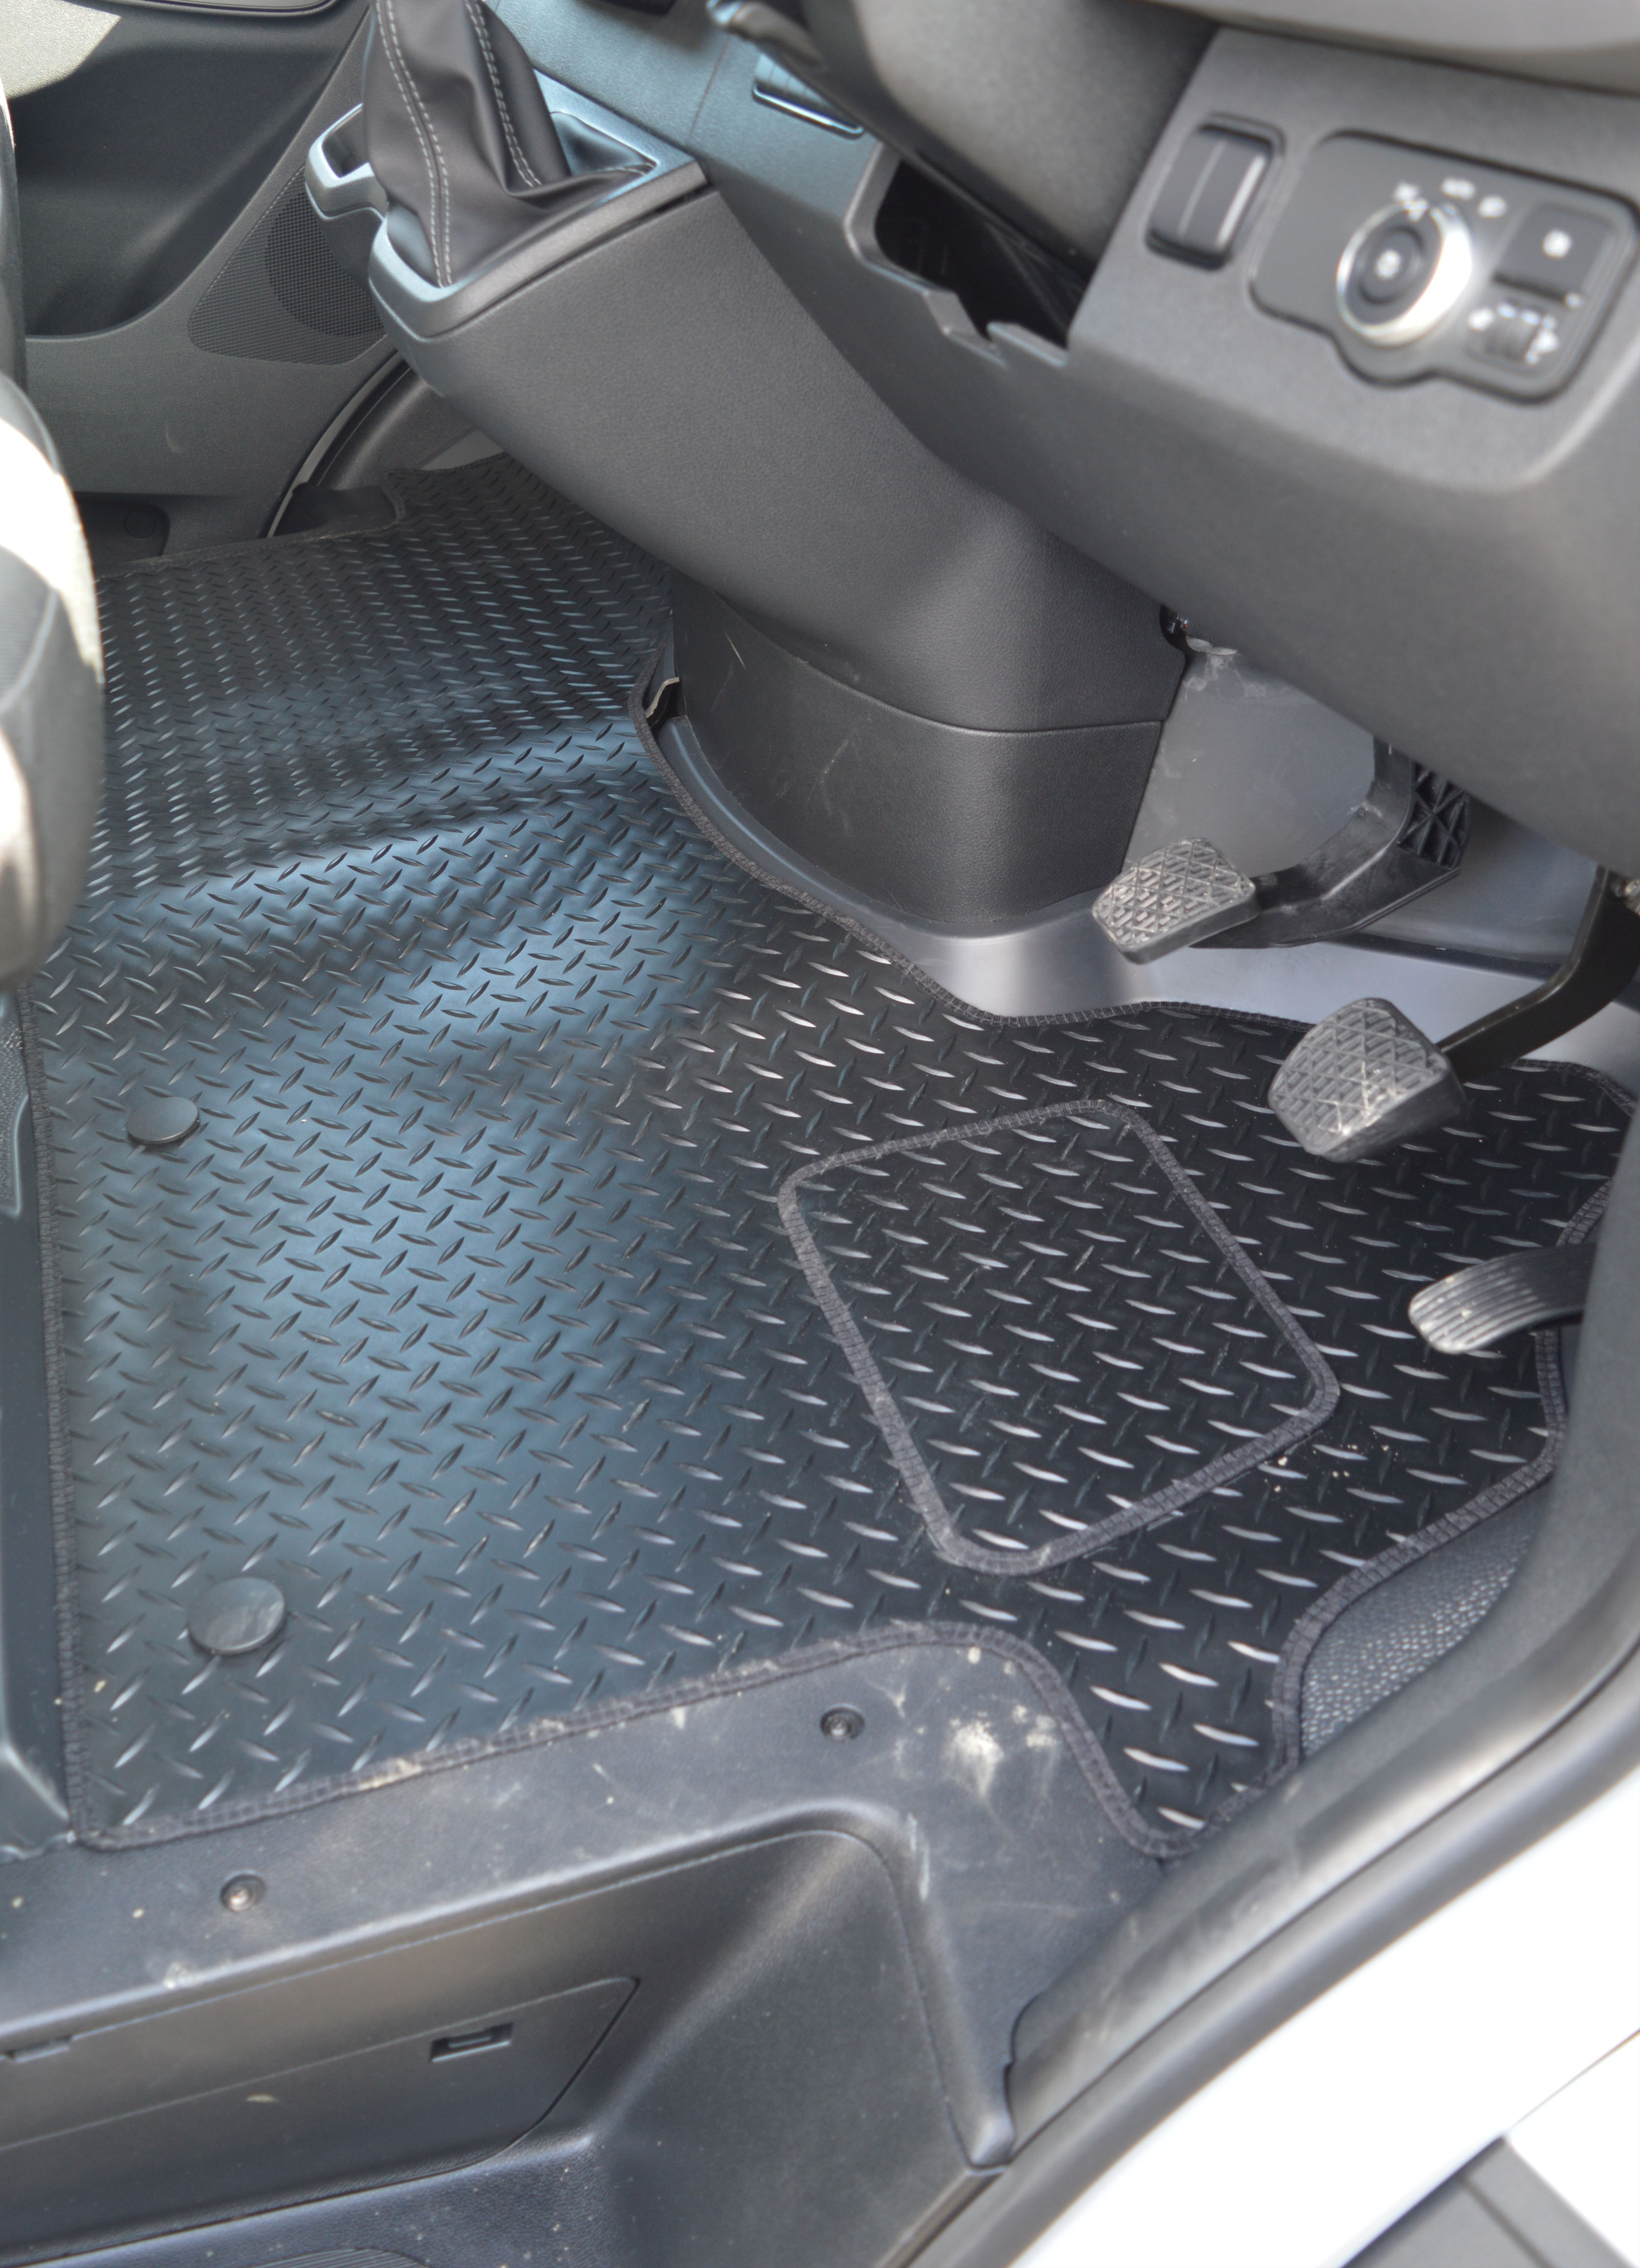 Miraculous Mercedes Sprinter Rubber Tailored Full Cover Floor Mats Caraccident5 Cool Chair Designs And Ideas Caraccident5Info